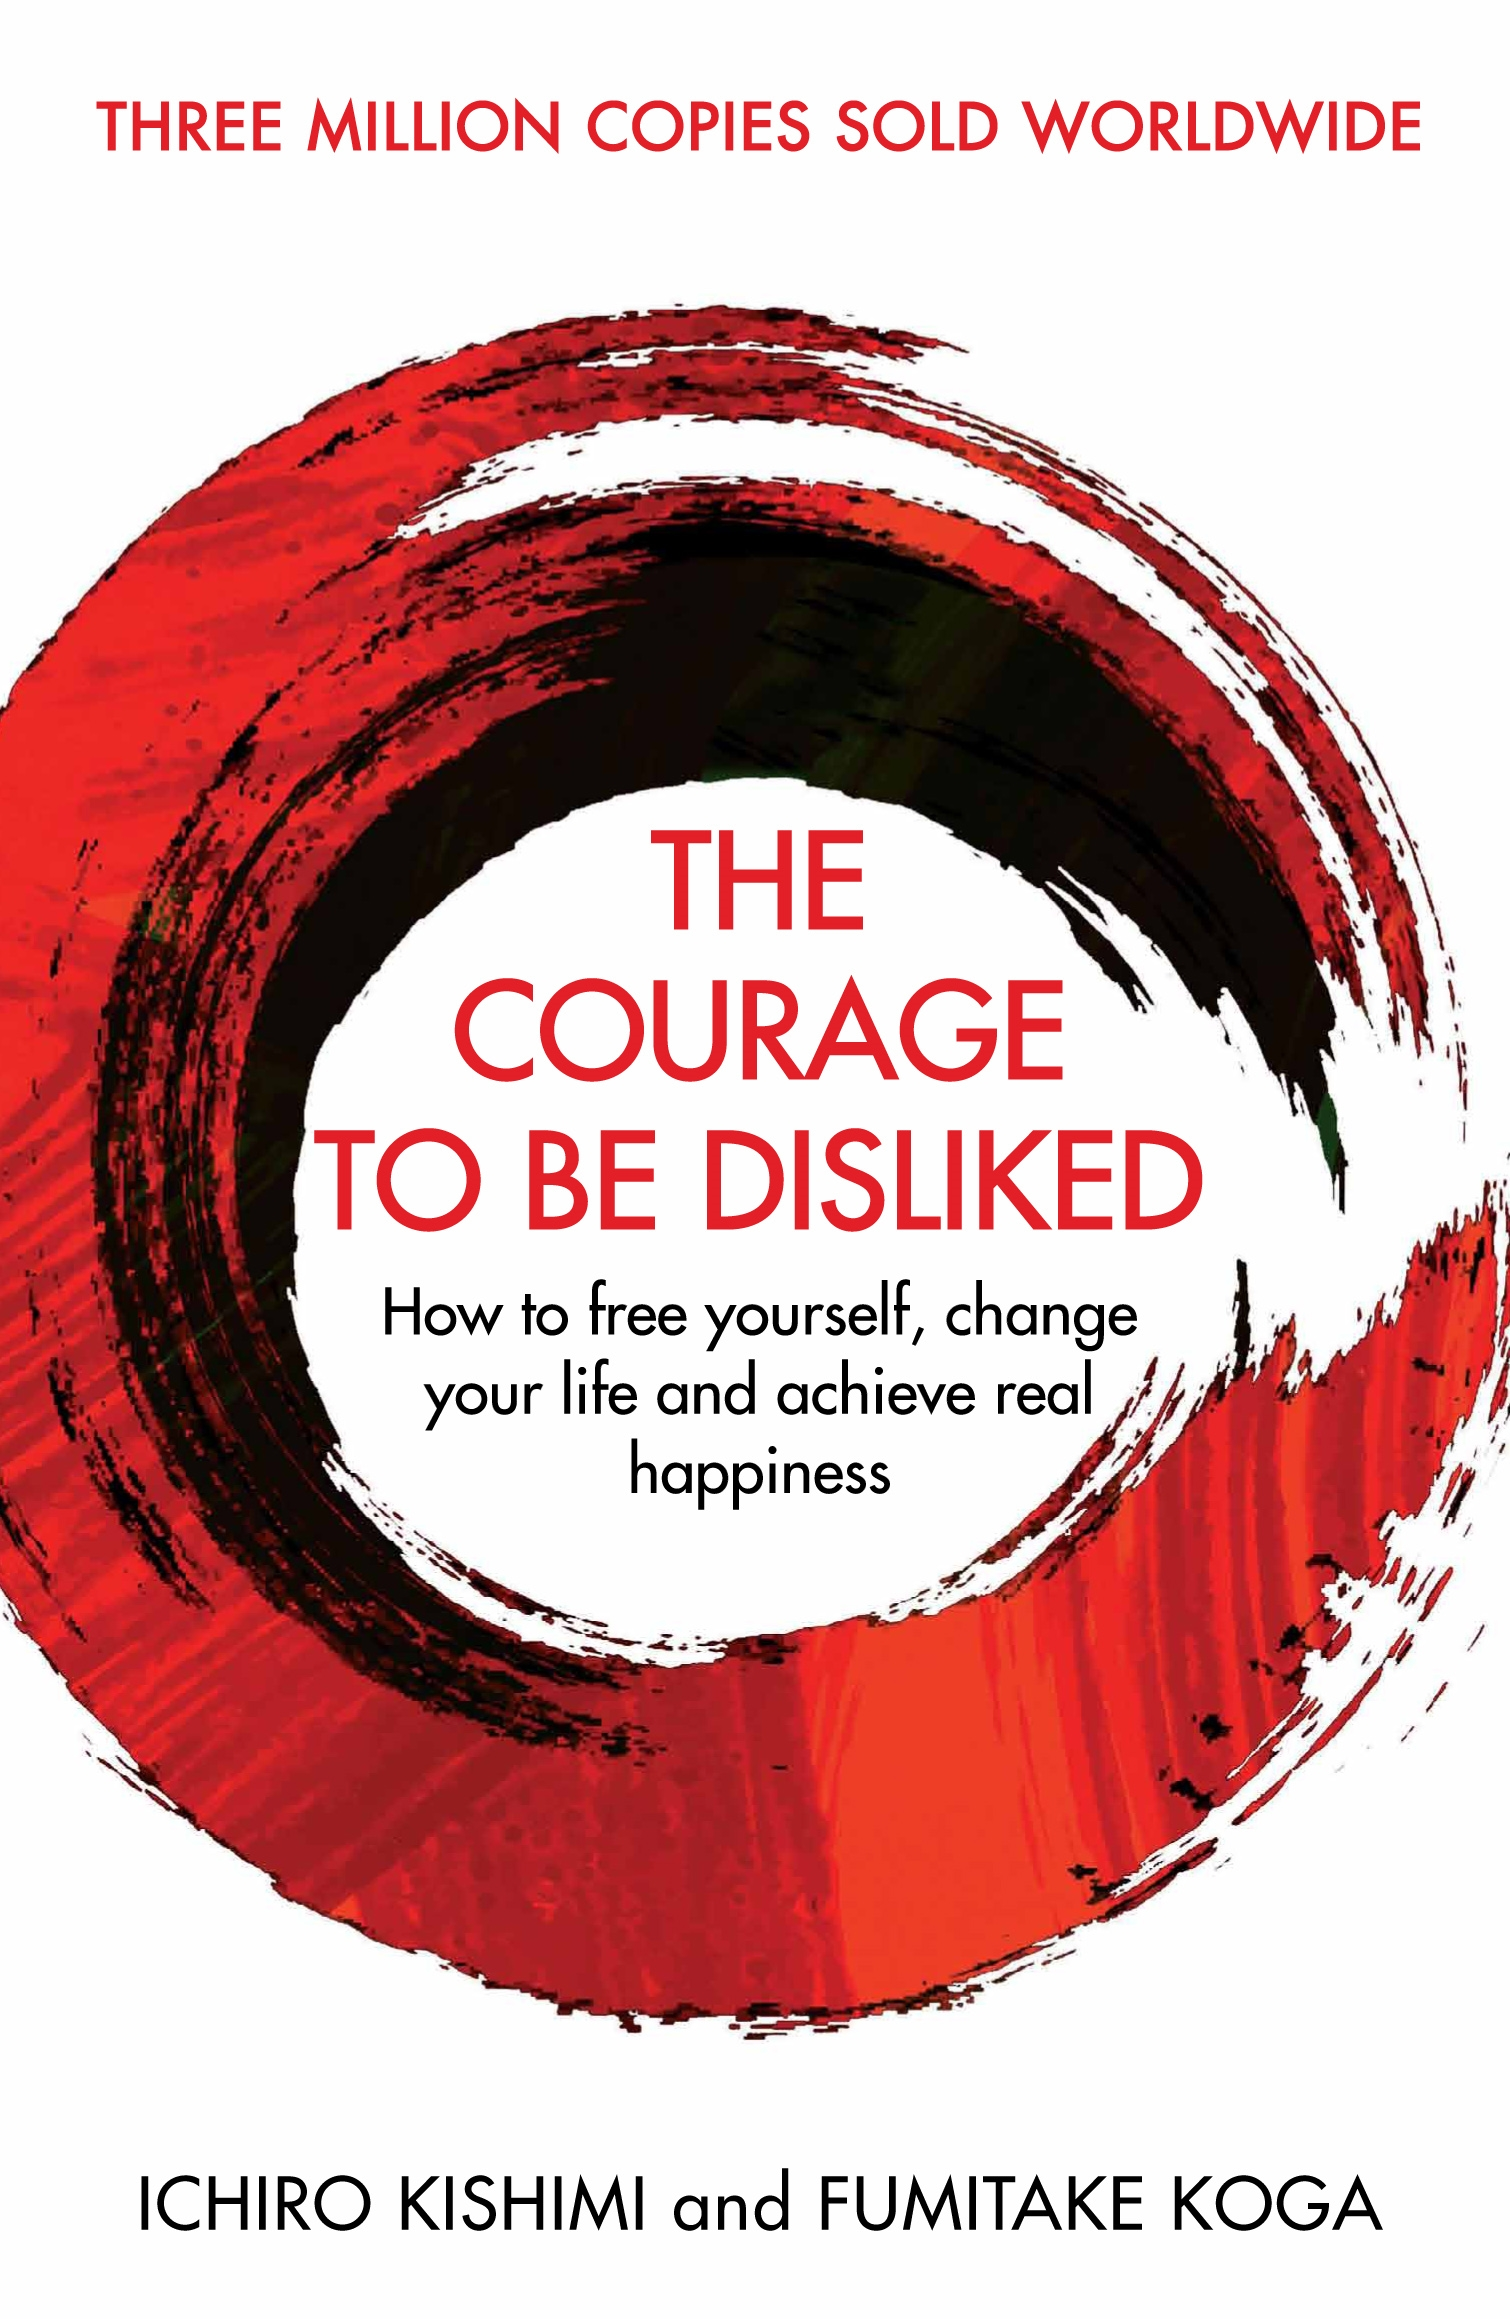 The Courage To Be Disliked: How to free yourself, change your life and achieve real happiness by Fumitake Koga, Ichiro Kishimi